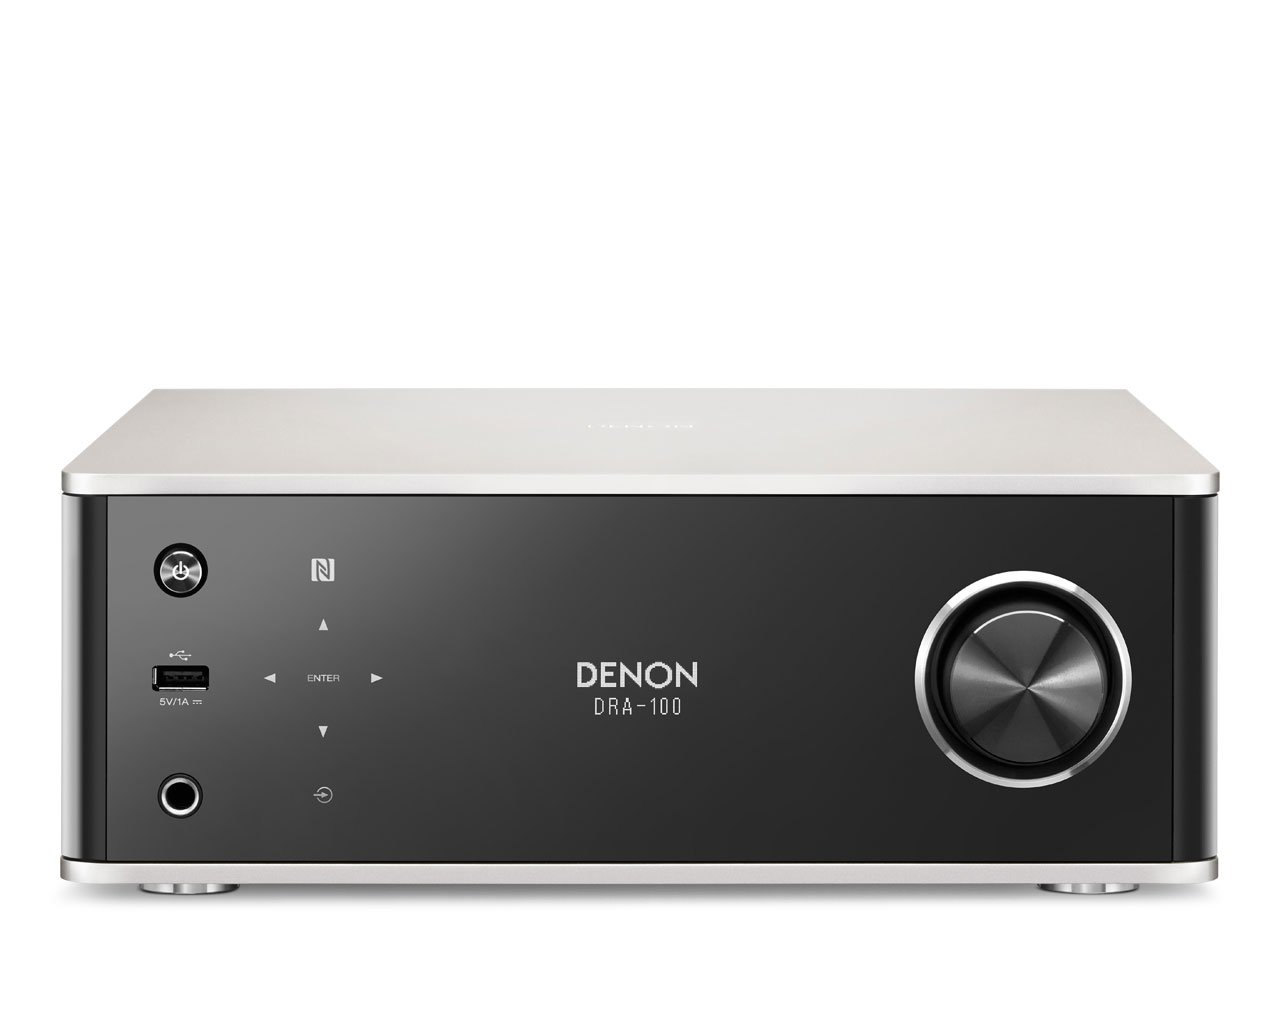 Wlan Audio Receiver, Wlan Audio Receiver Test, Wlan Audio Receiver kaufen, bester Wlan Audio Receiver, Audio Receiver, Audio Receiver mit Wlan, Wlan Audio AV Receiver, Audio AV Receiver, Denon DRA100SPE2, Denon DRA100SPE2 Test, Denon DRA100SPE2 kaufen